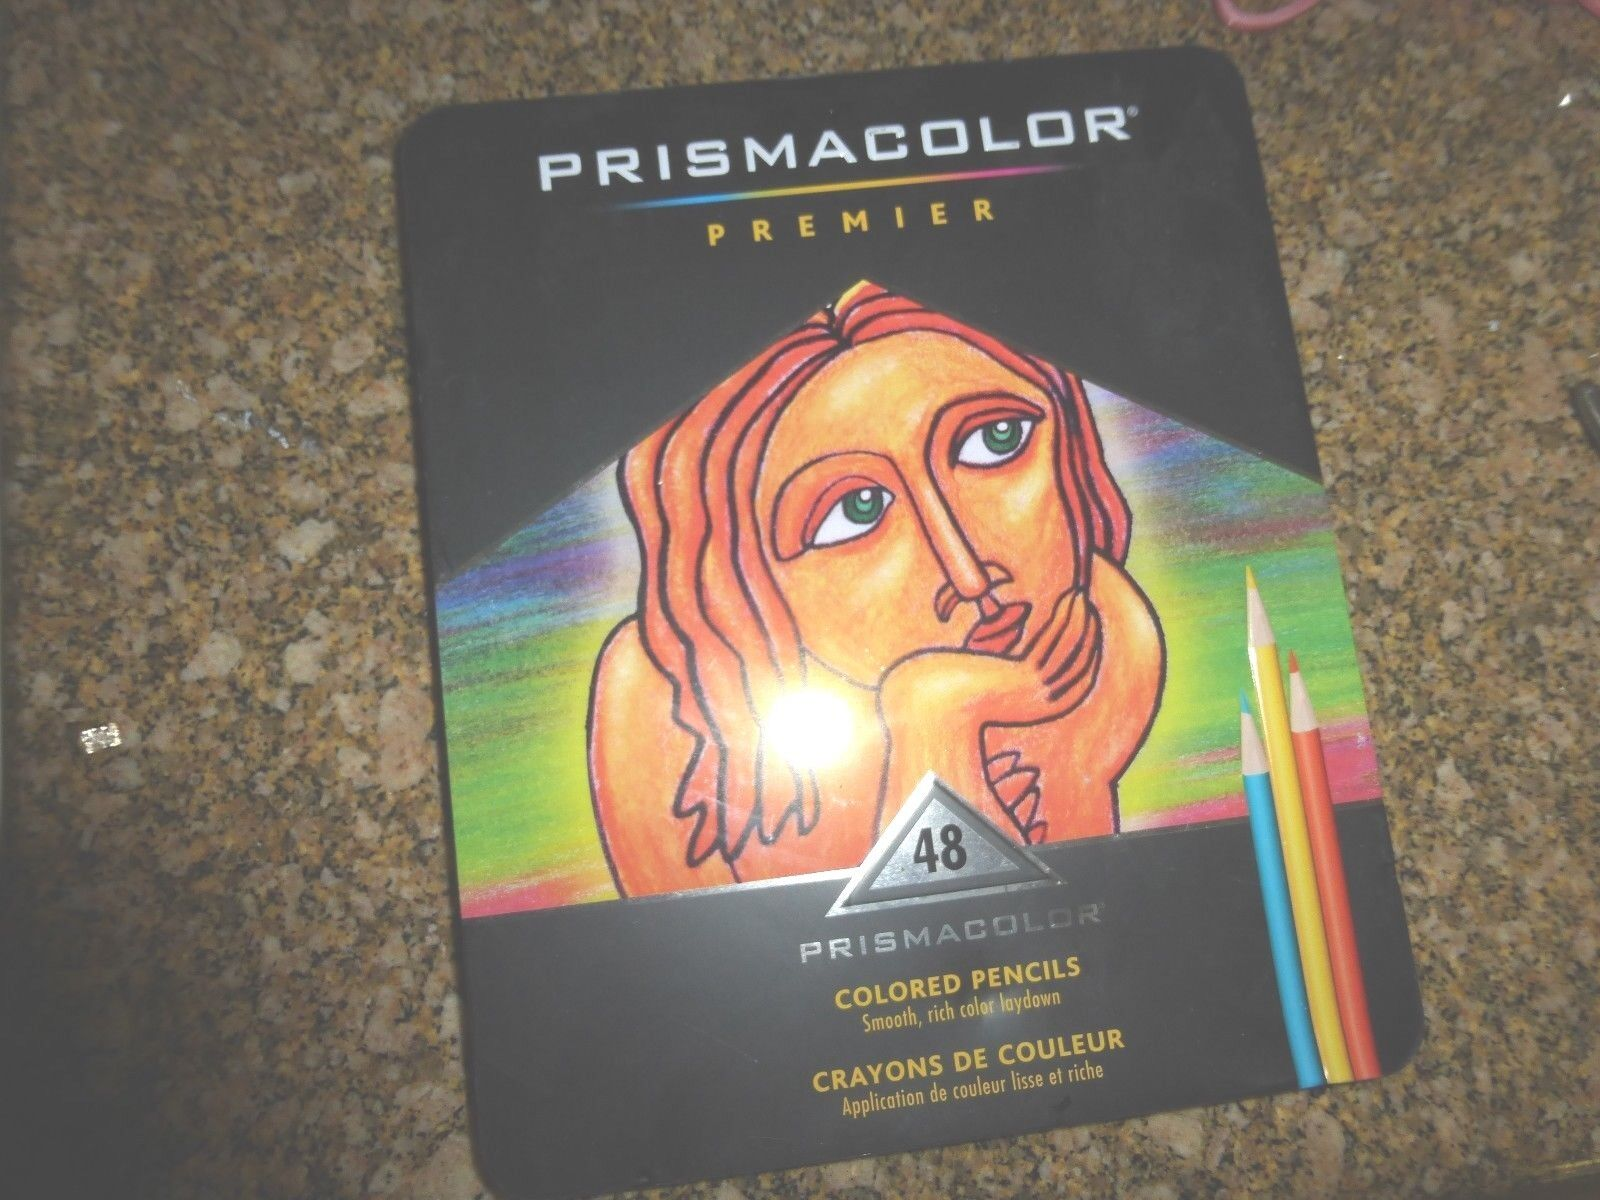 Prismacolor Quality Art Set Premier Colored Pencils 48 Pack